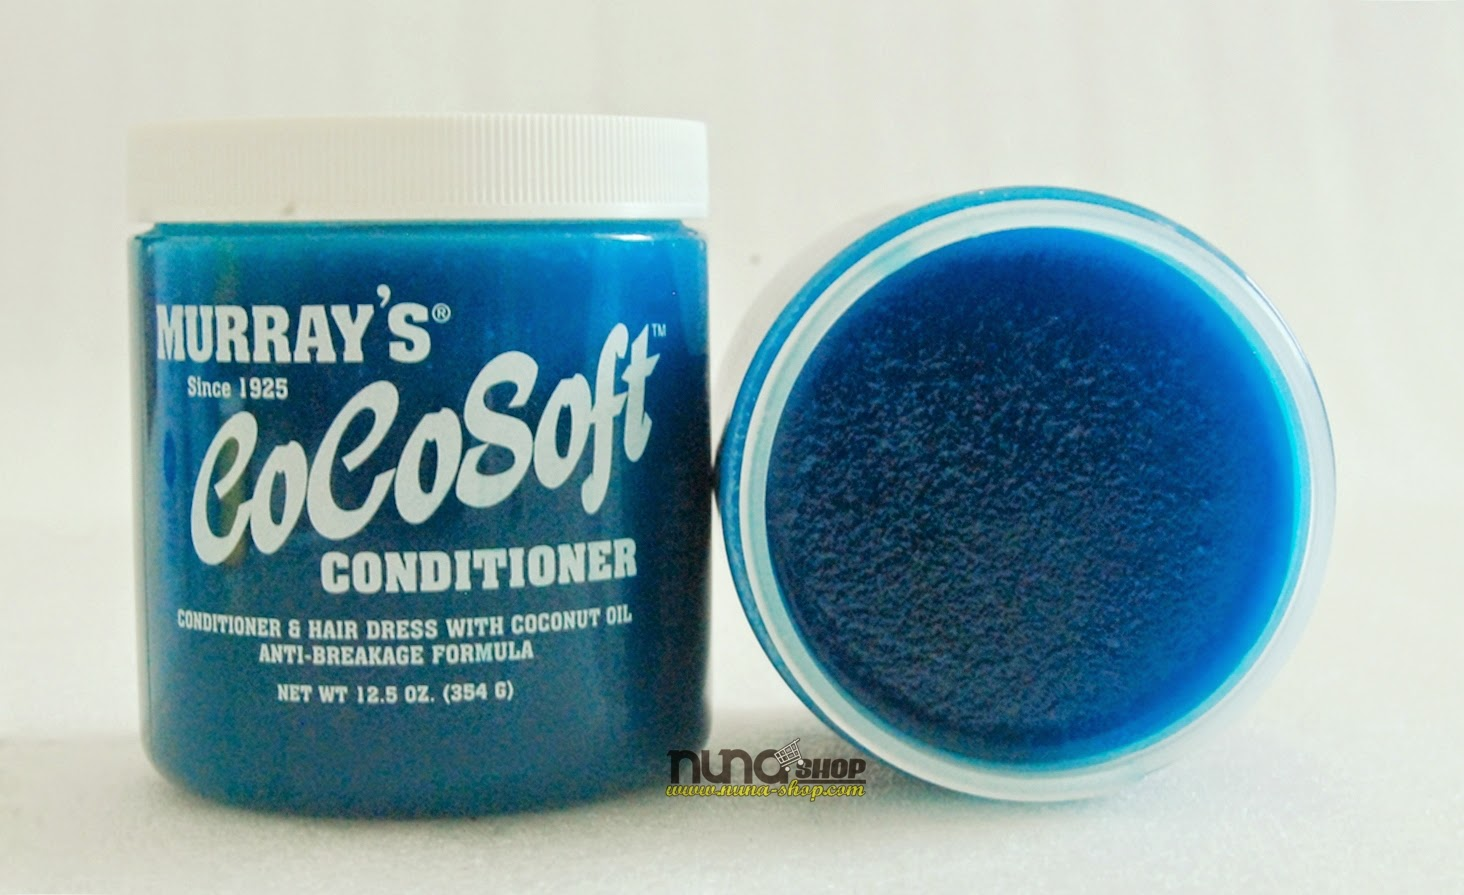 Murray's Cocosoft Blue Conditioner 12.5oz